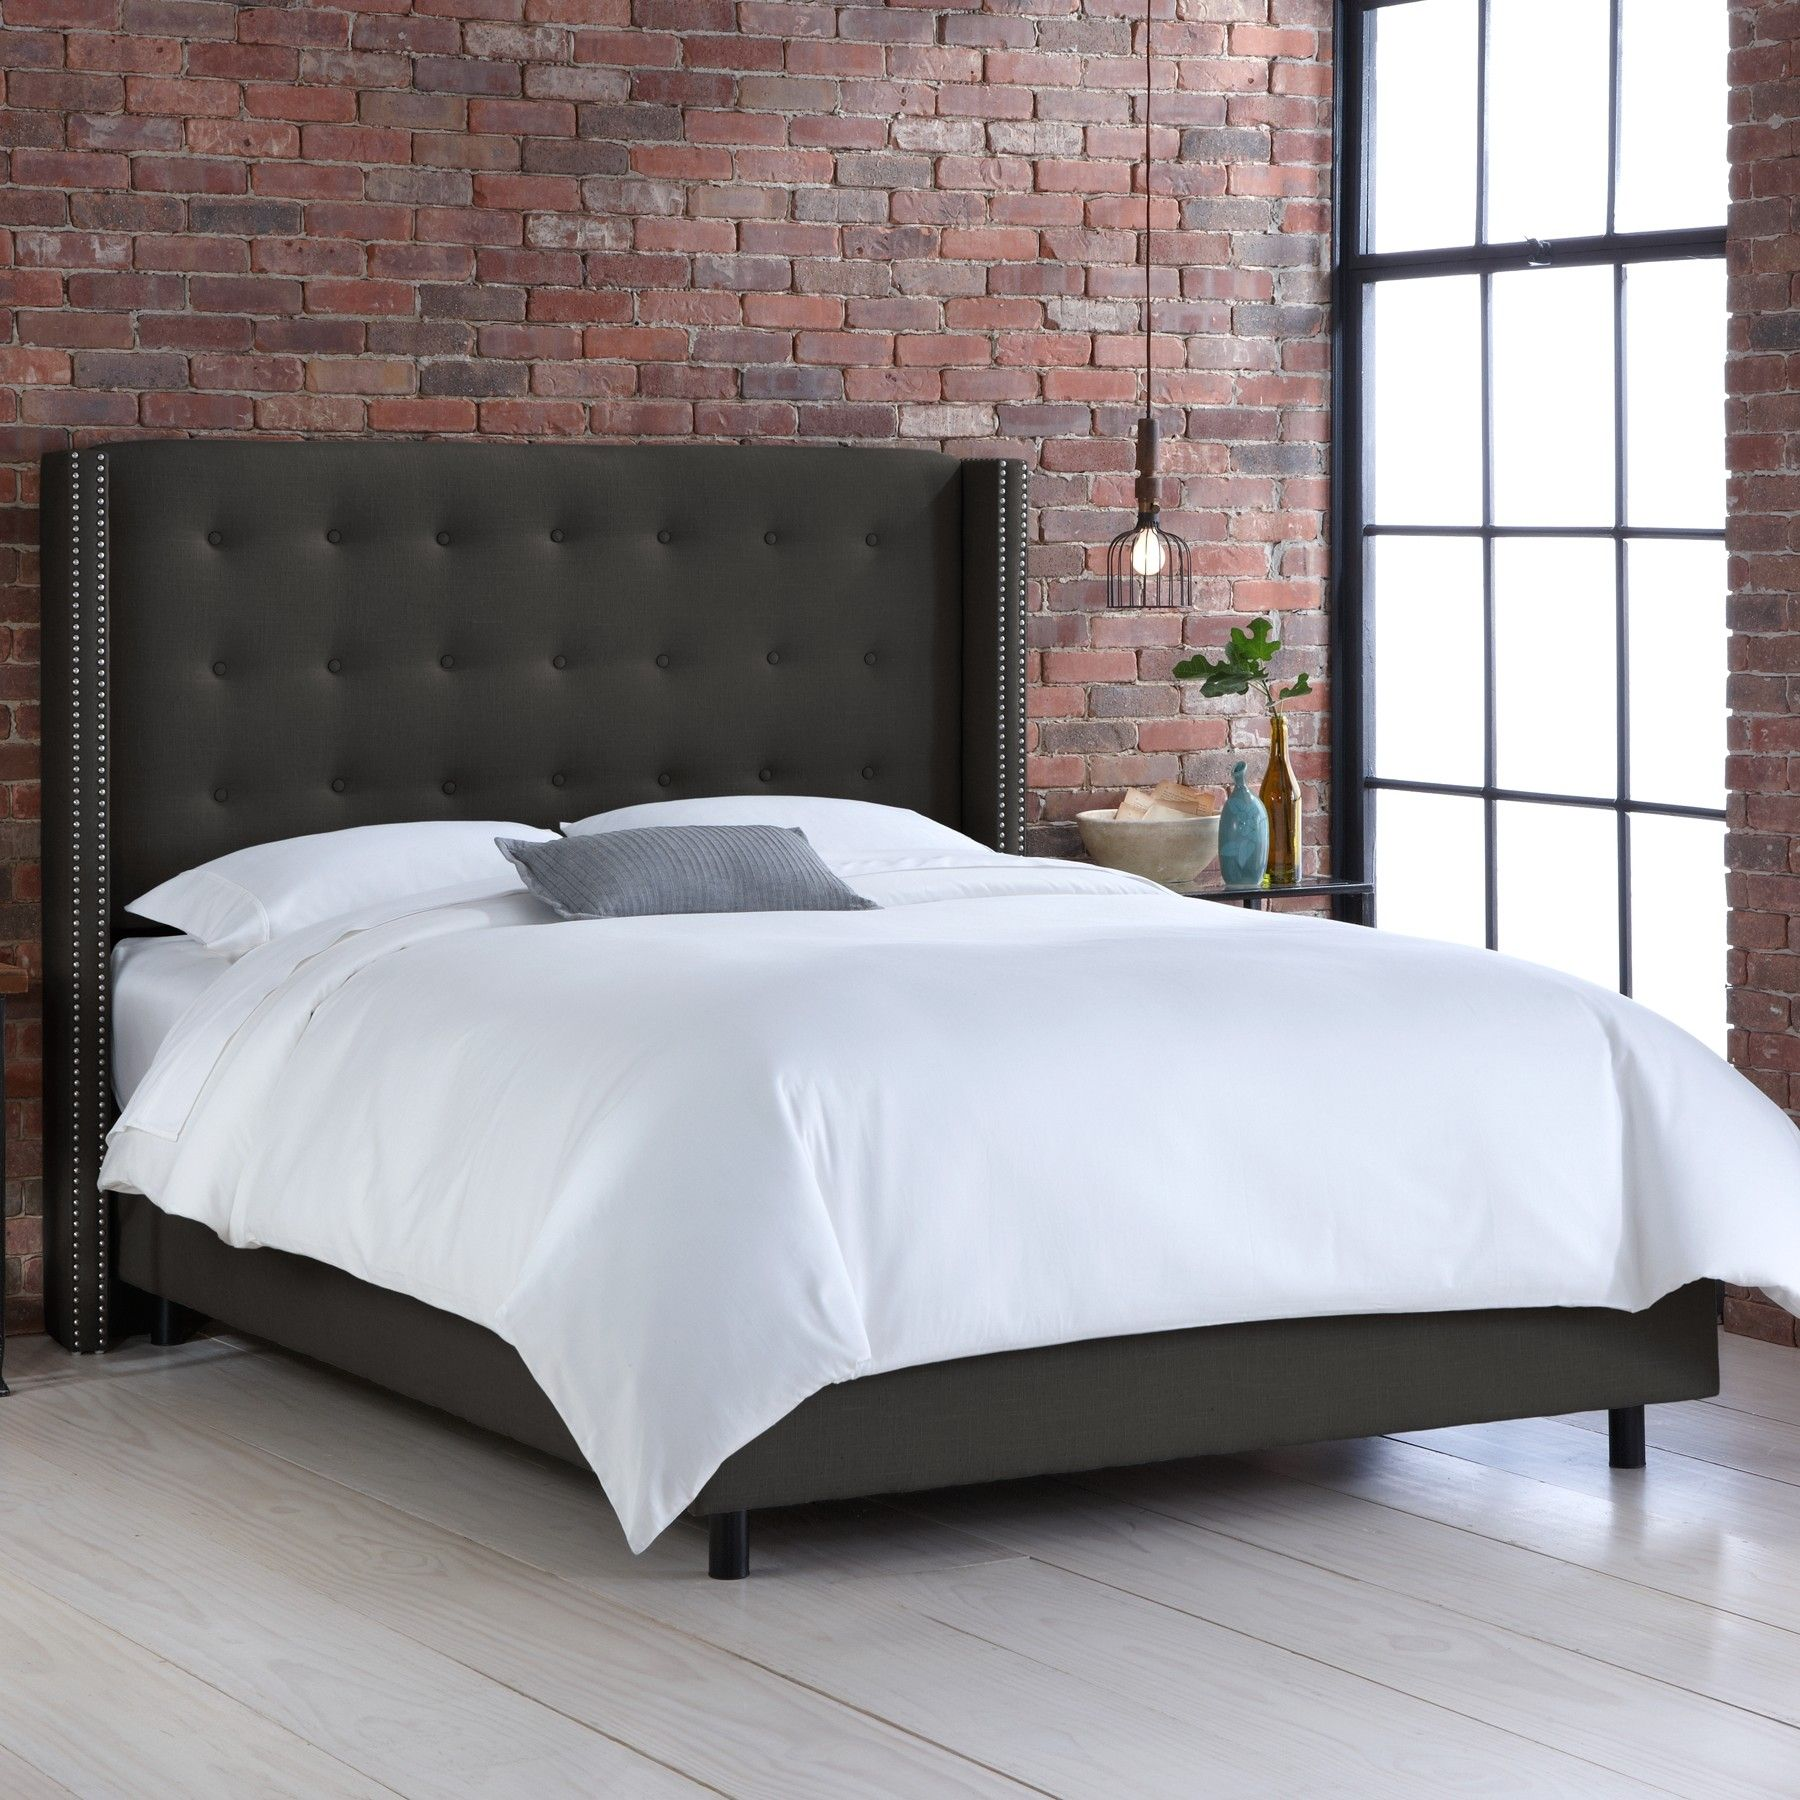 Kipp Upholstered Panel Bed | Products | Pinterest